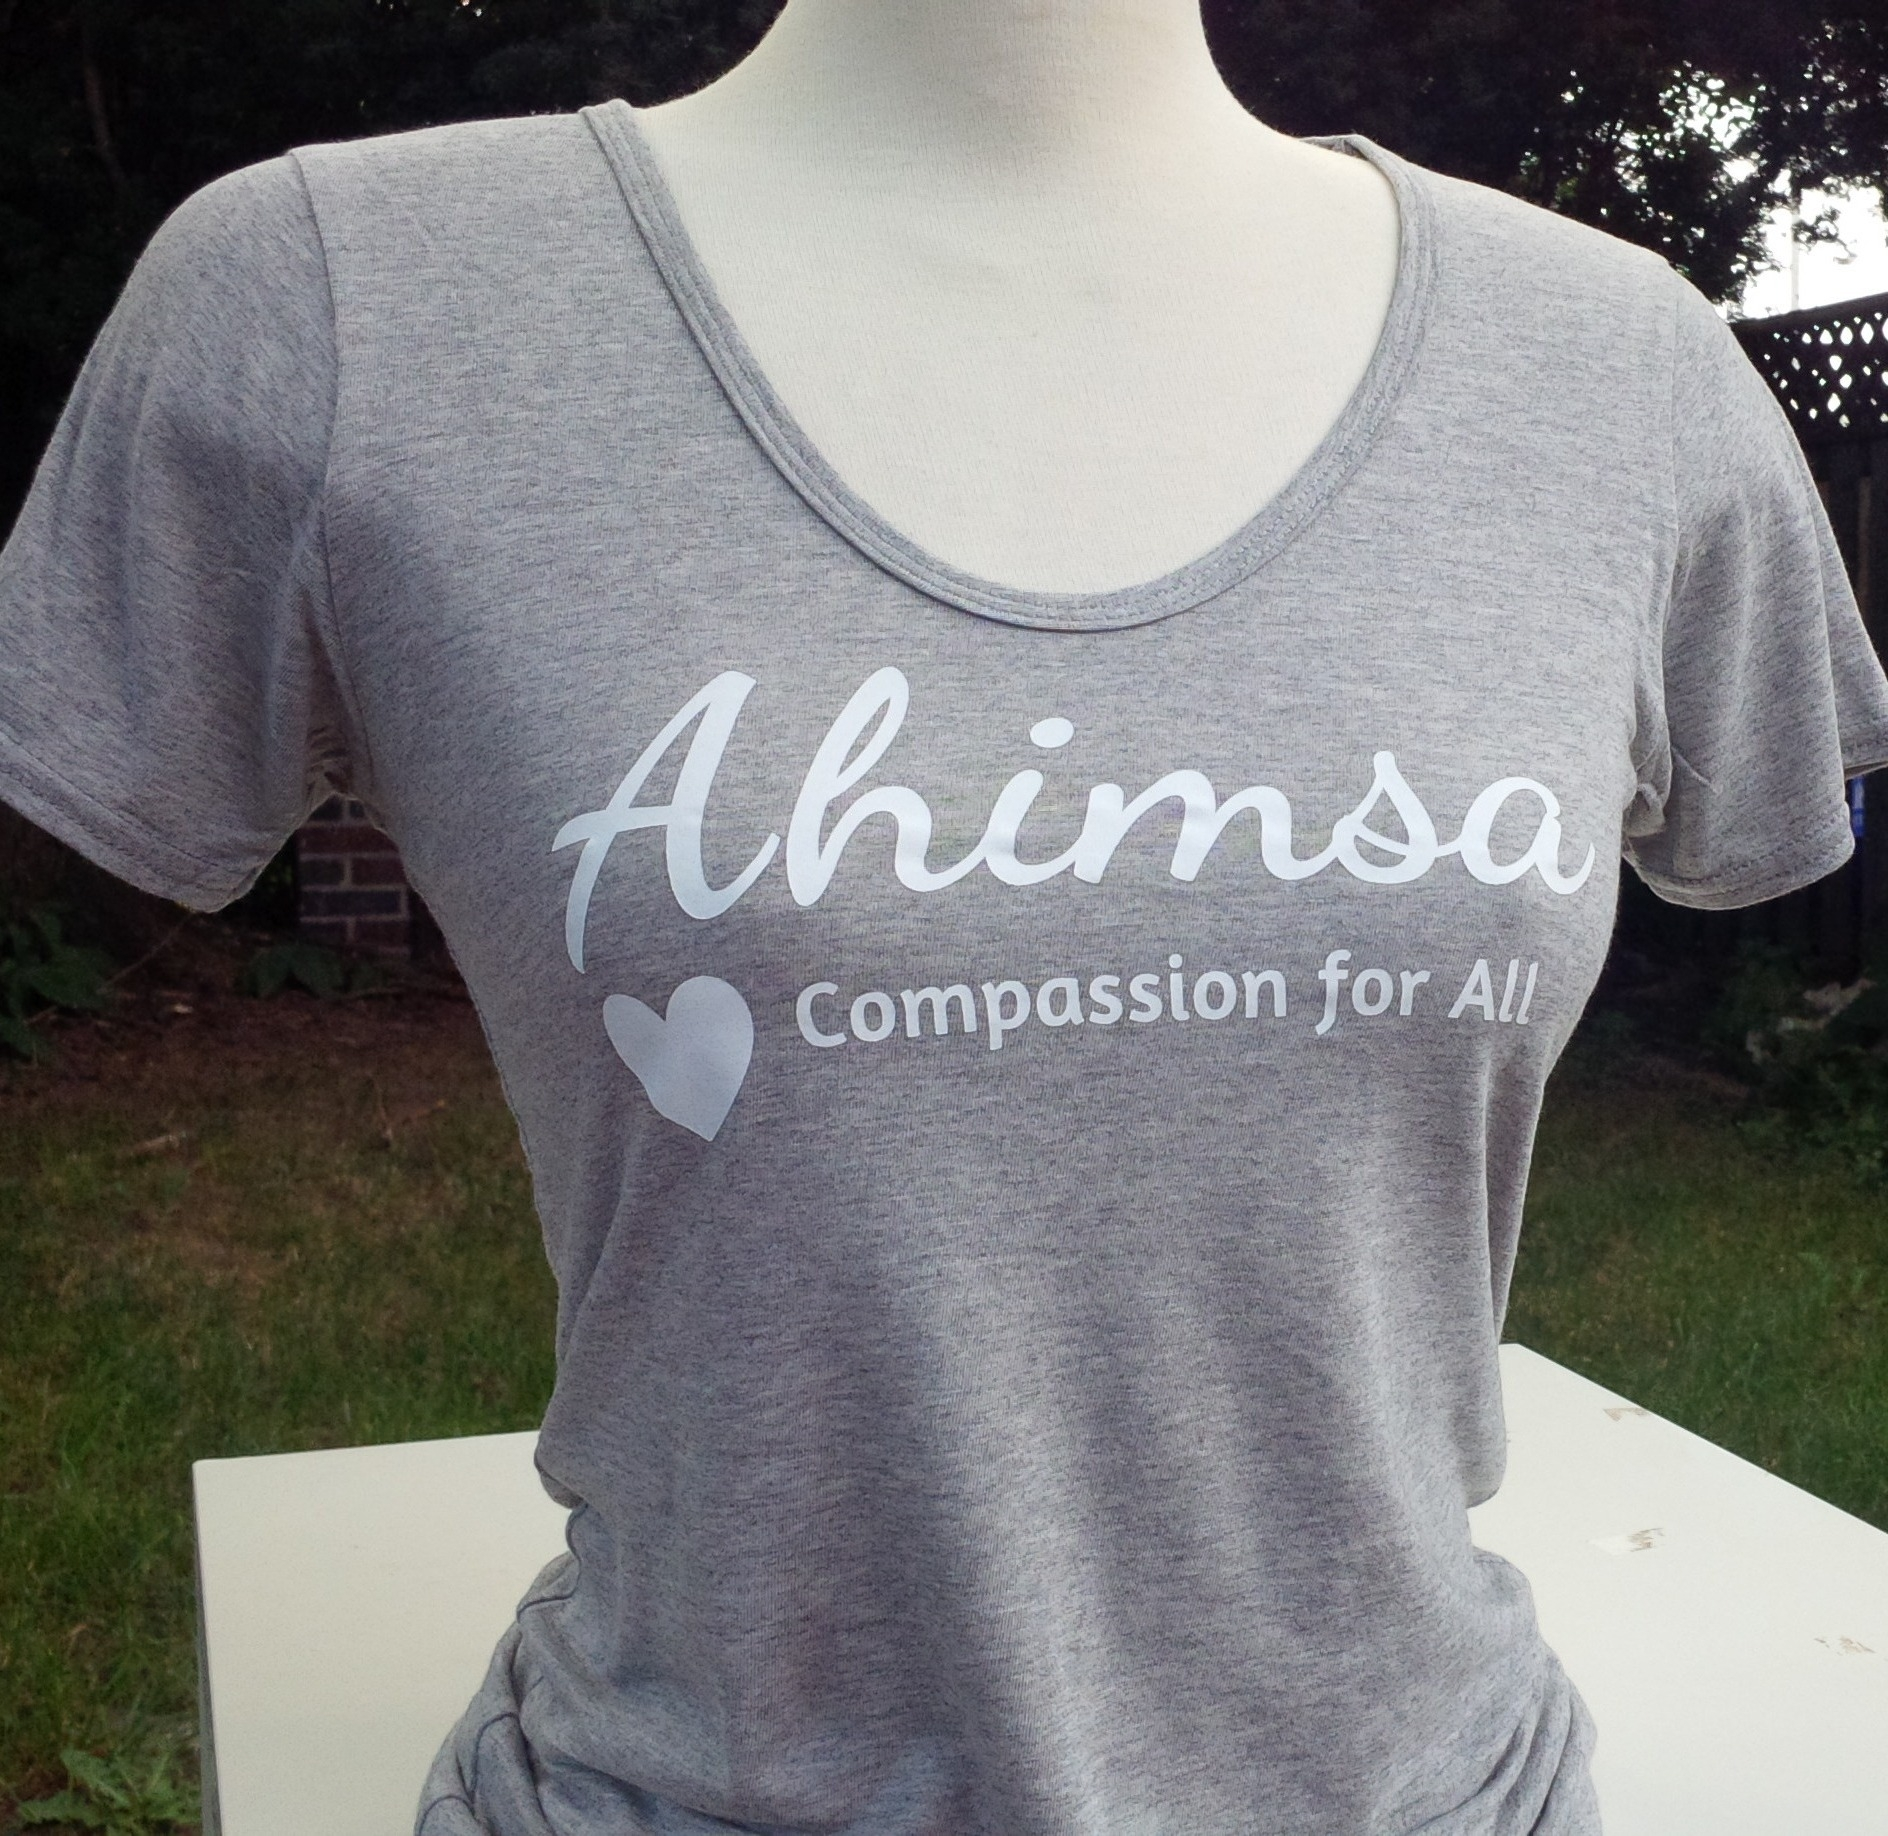 239de7db3b972 Ahimsa - Compassion for All - Bamboo   Organic Cotton Scoop Tee -